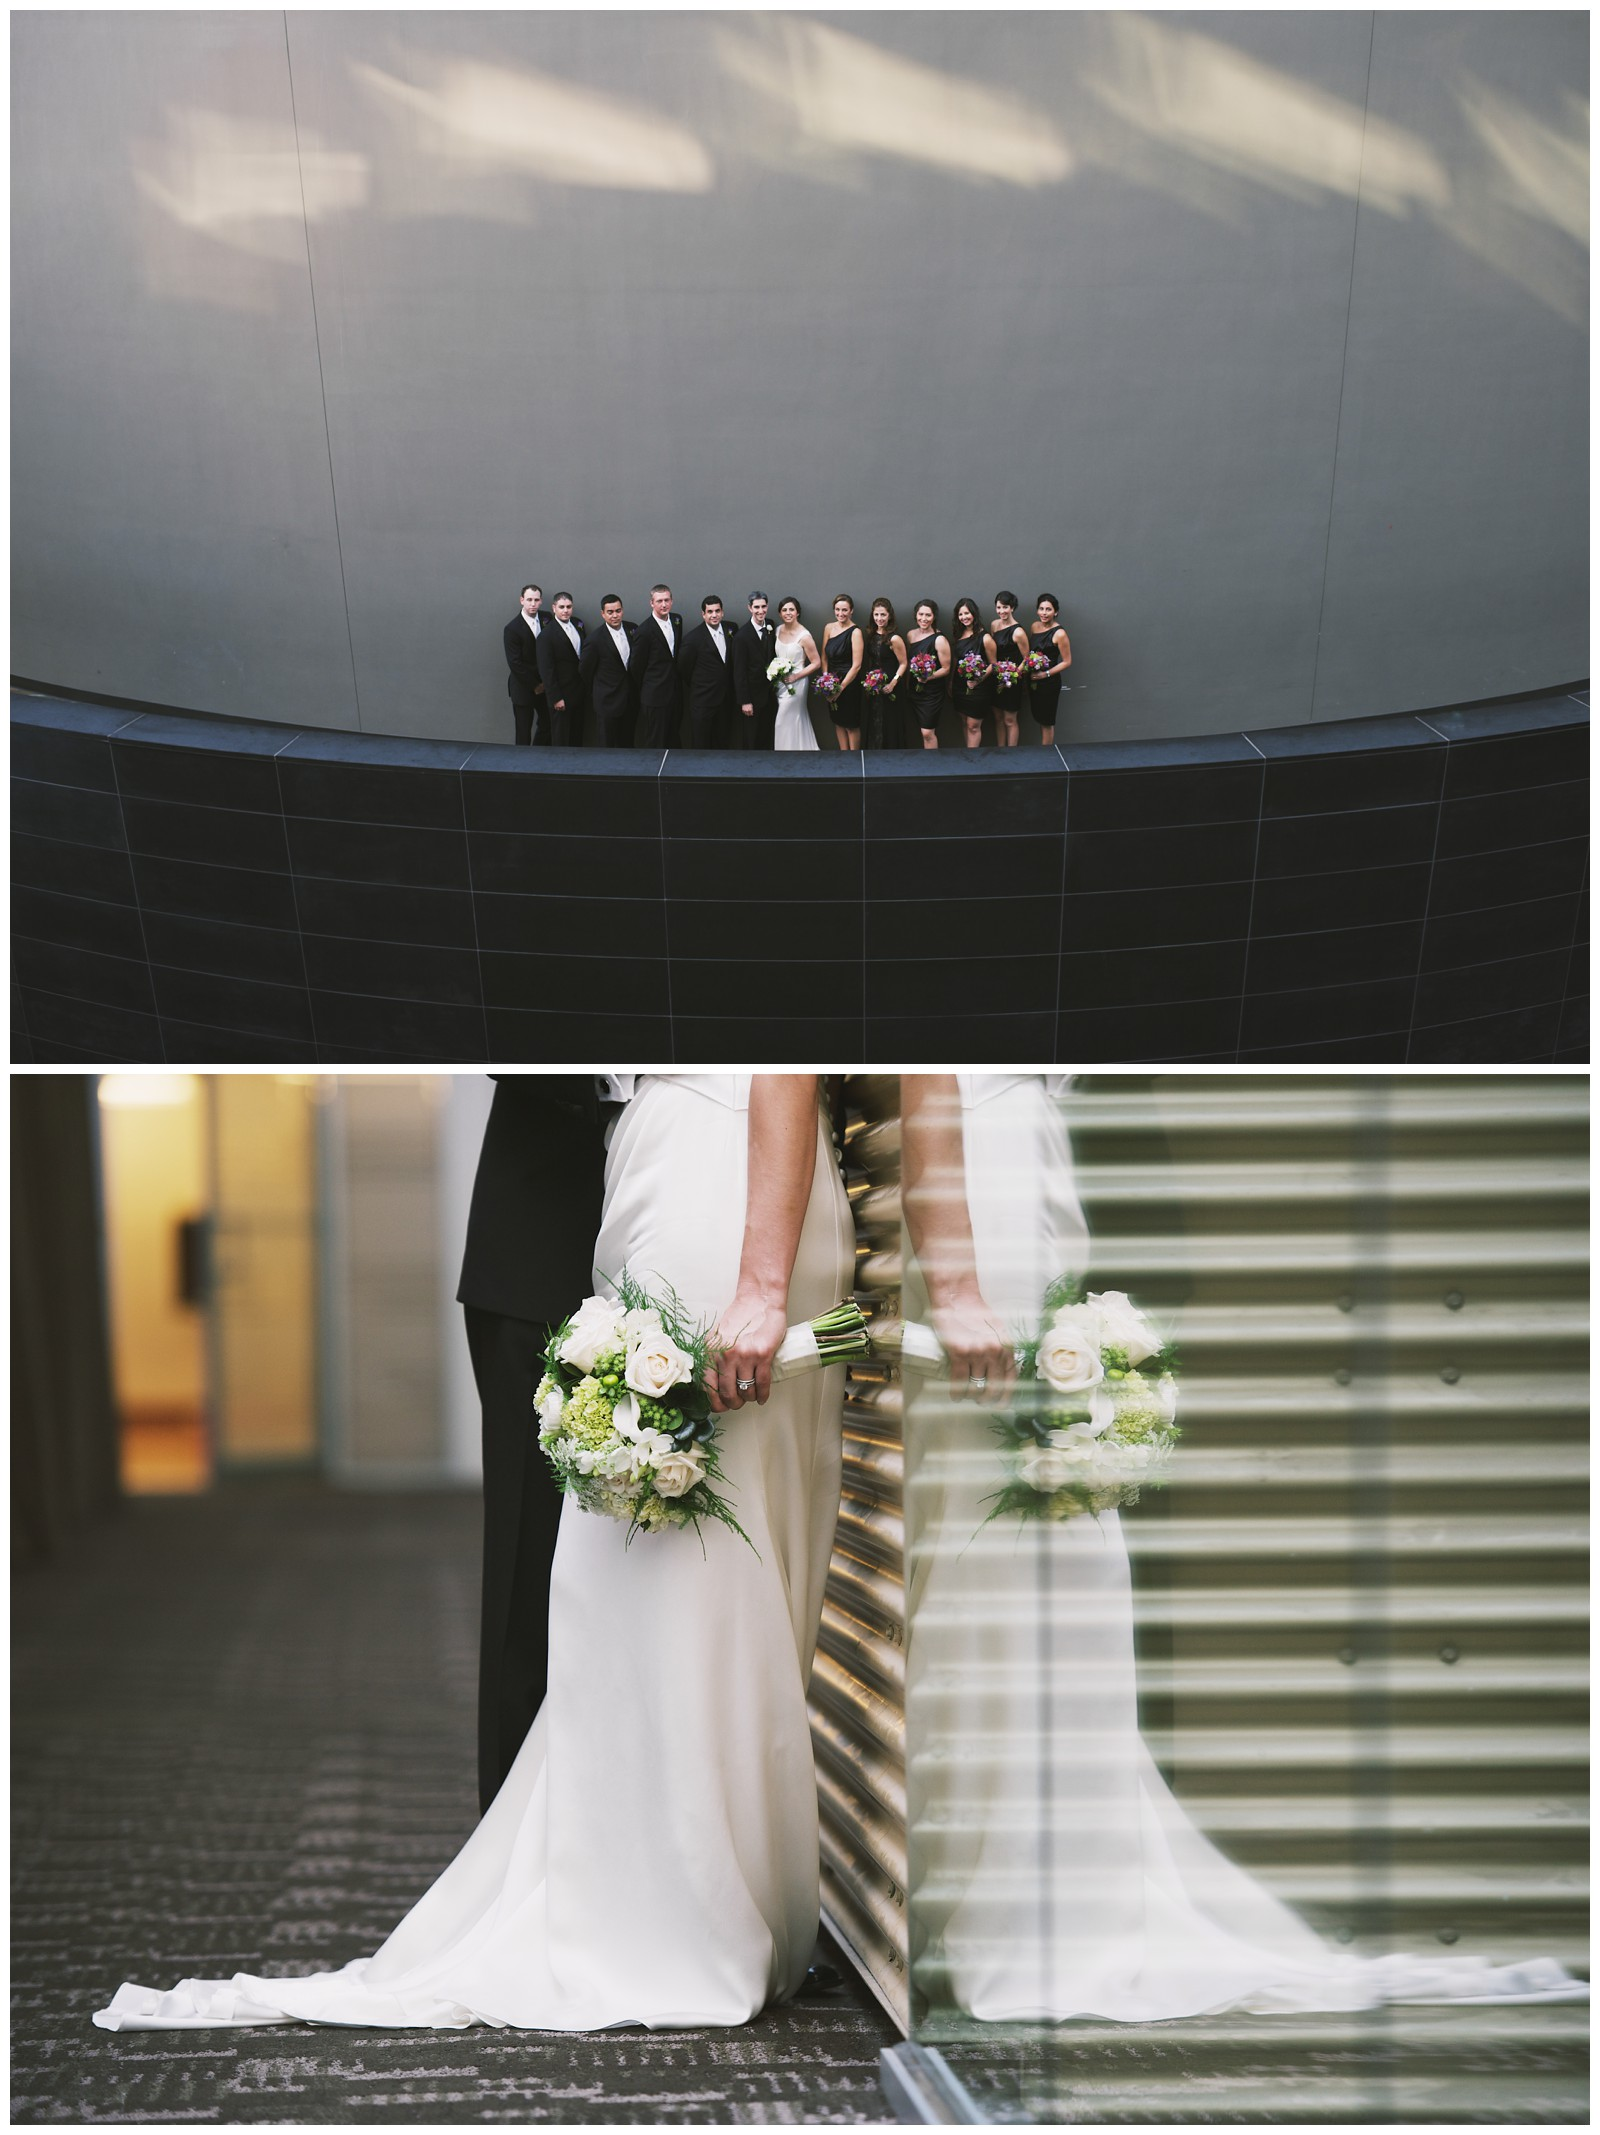 Vanessa and Adam's Wedding at Kimmel Center Philadelphia_0032